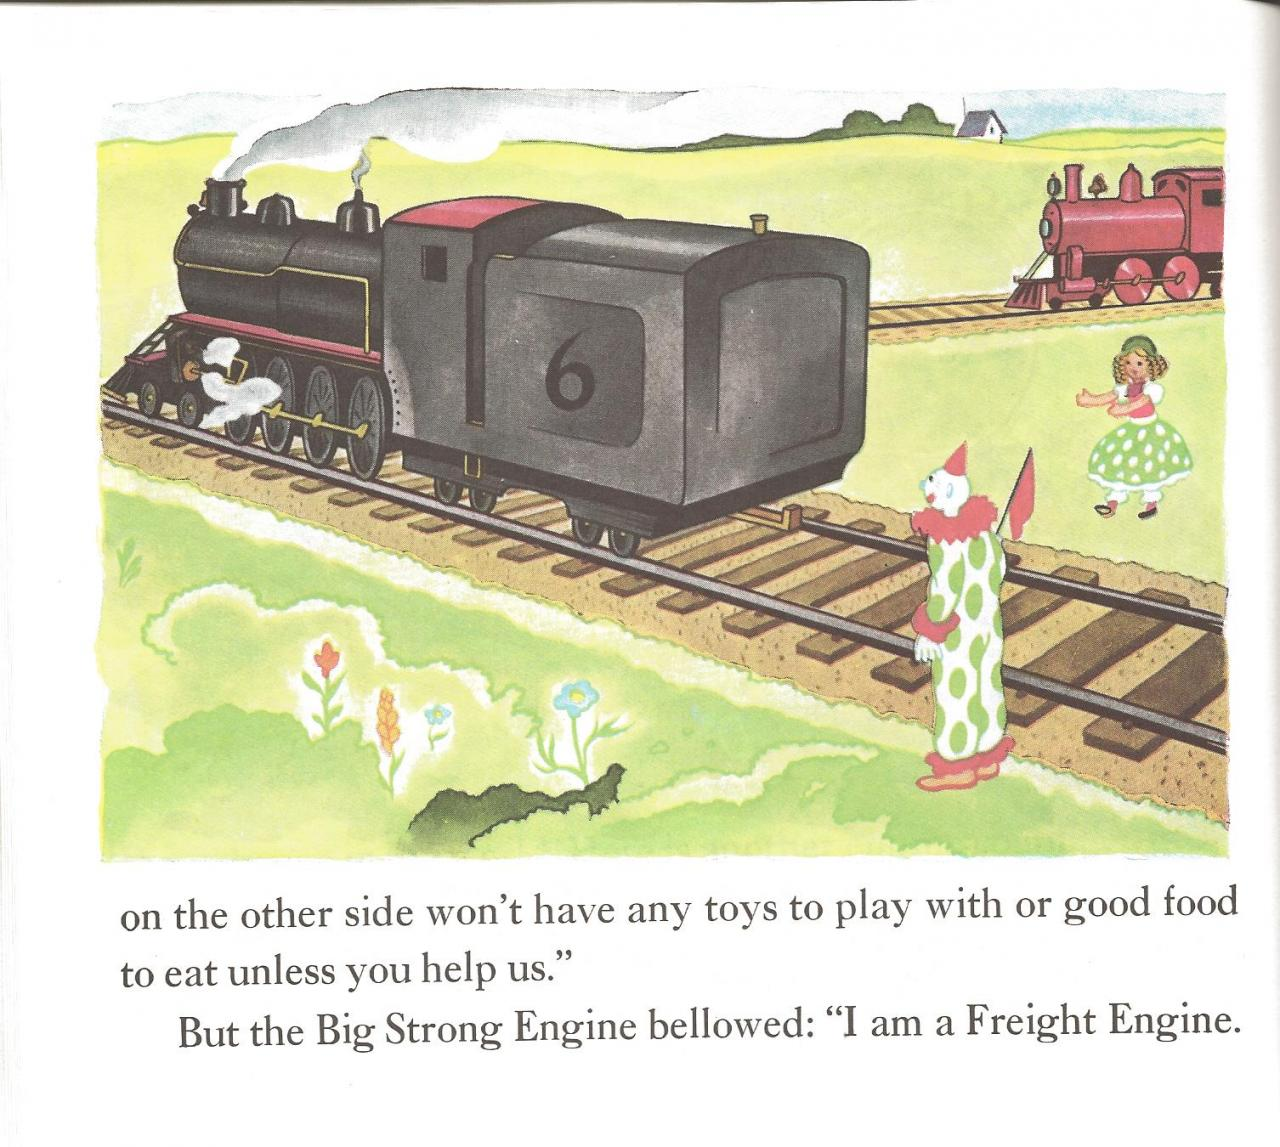 Dequincy Railroad Museum The Little Engine That Could